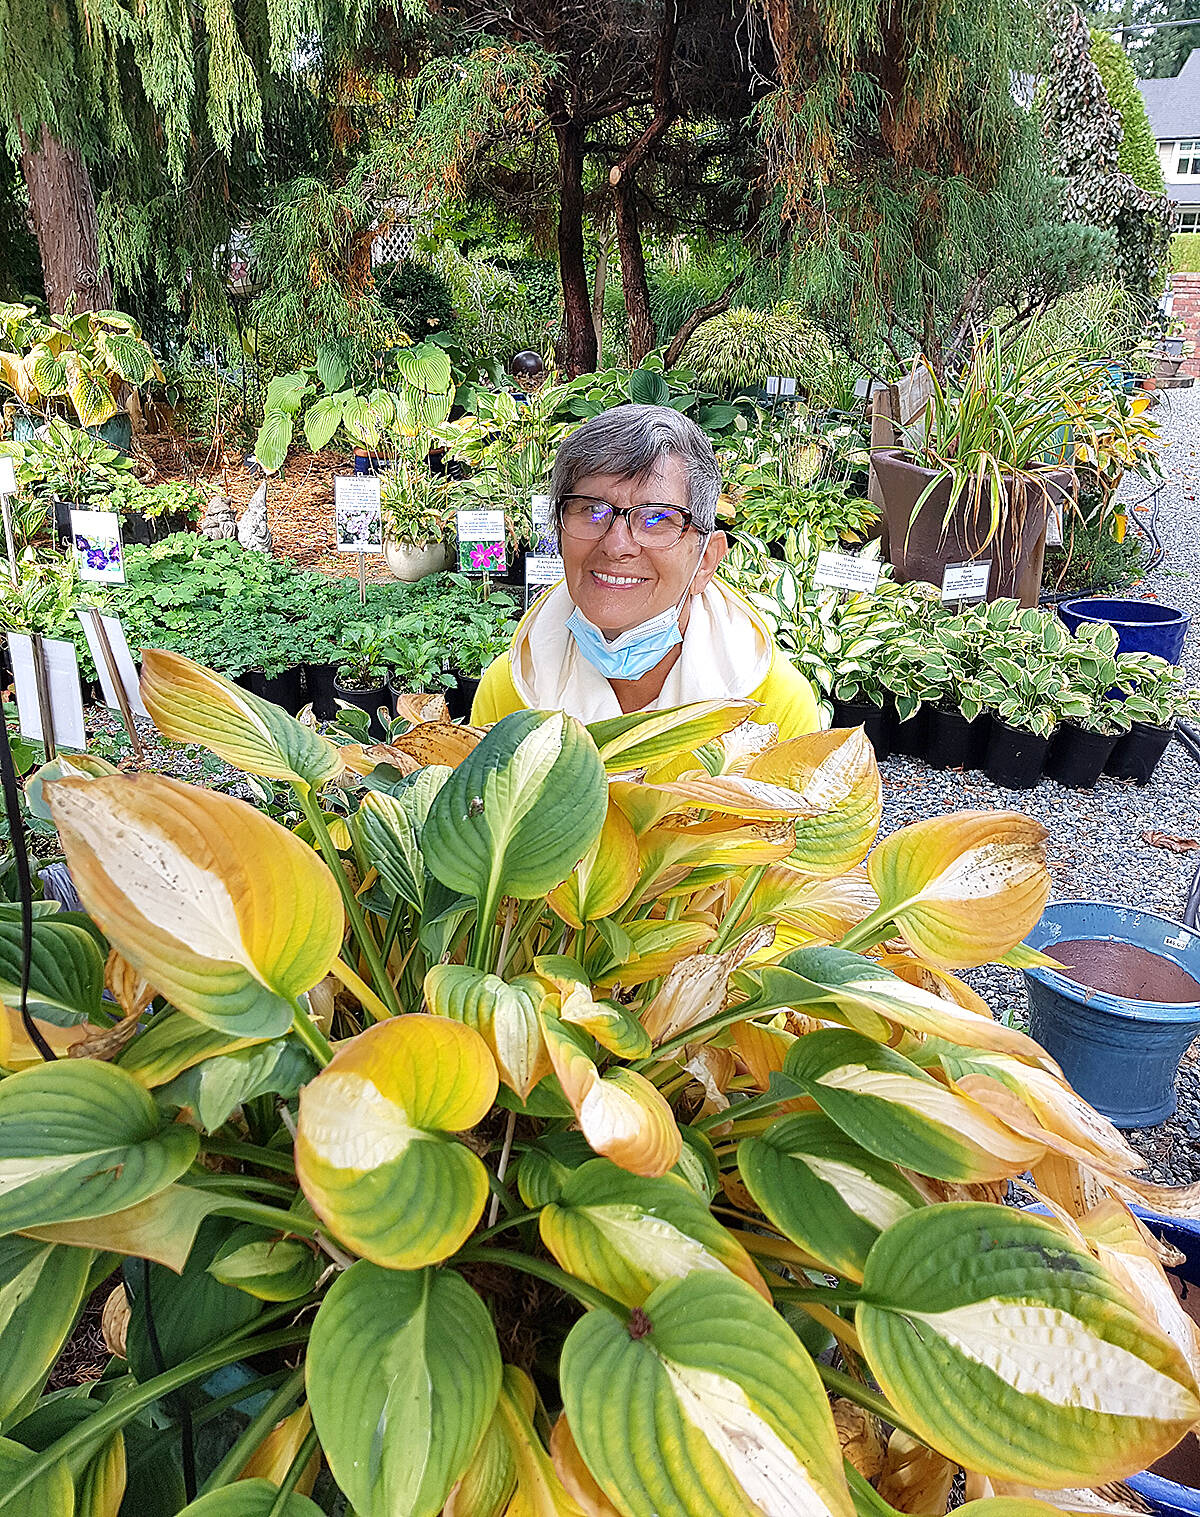 Dorothy MacBeth admired some of the hostas at Erikson's Daylily Gardens, despite their end of season yellowing. (Pam Erikson/Special to Langley Advance Times)